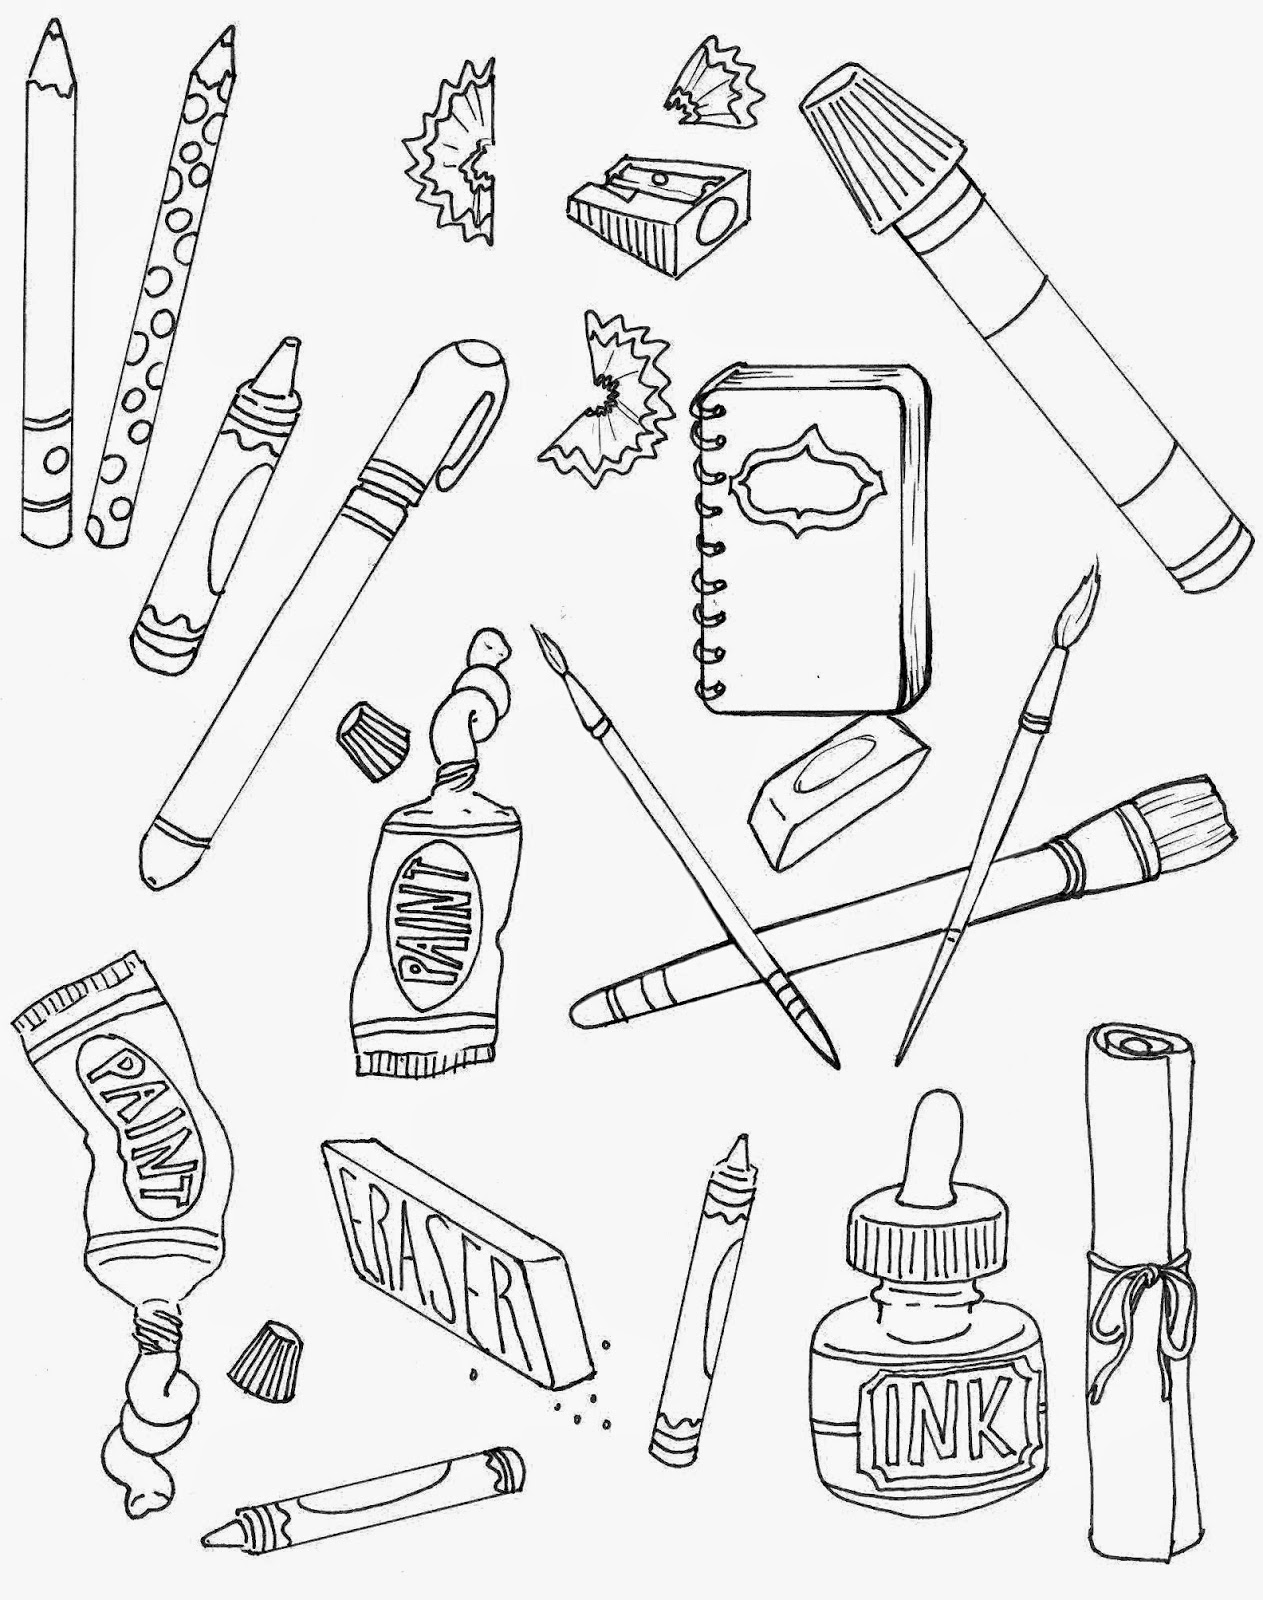 art-supplies-drawing, art-supplies-picture, picture-of-art-supplies